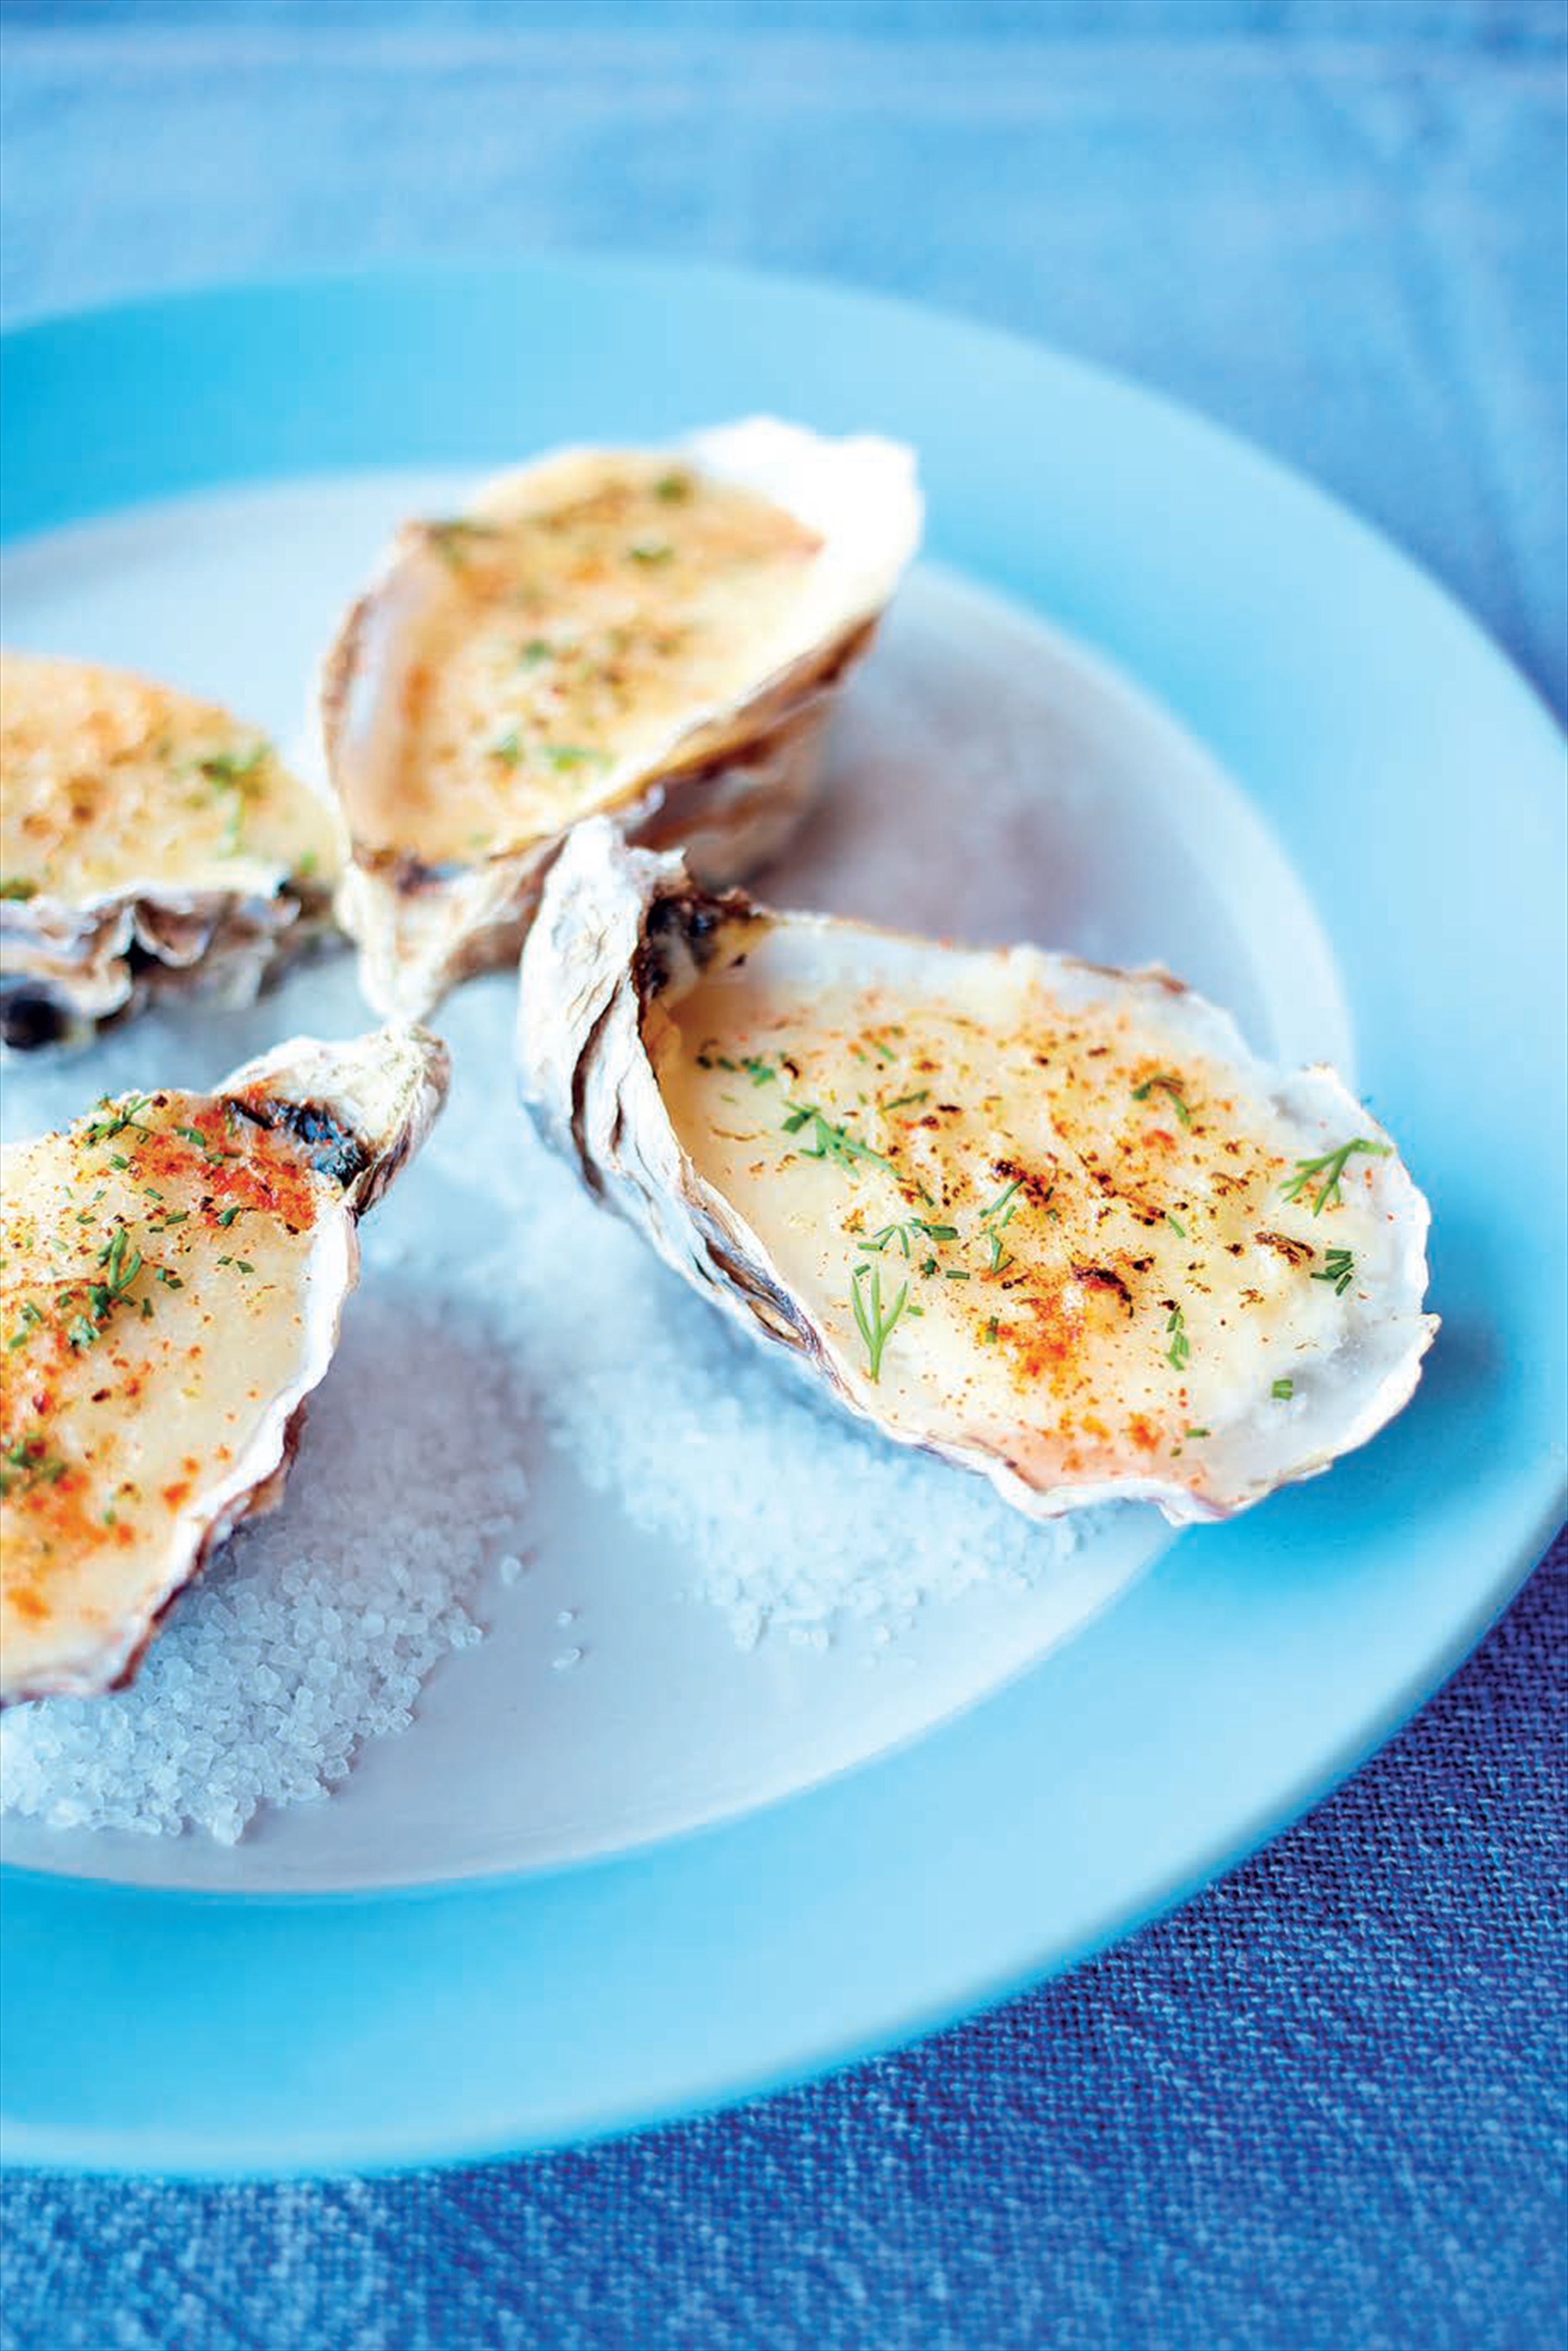 Oysters with smoked hollandaise sauce